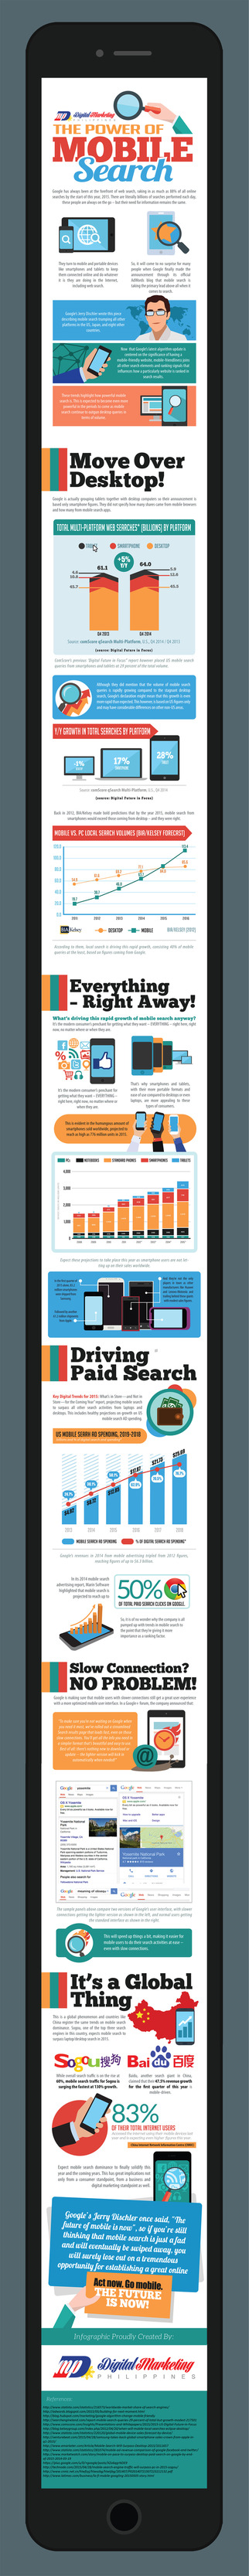 The-Power-of-Mobile-Search-b2c